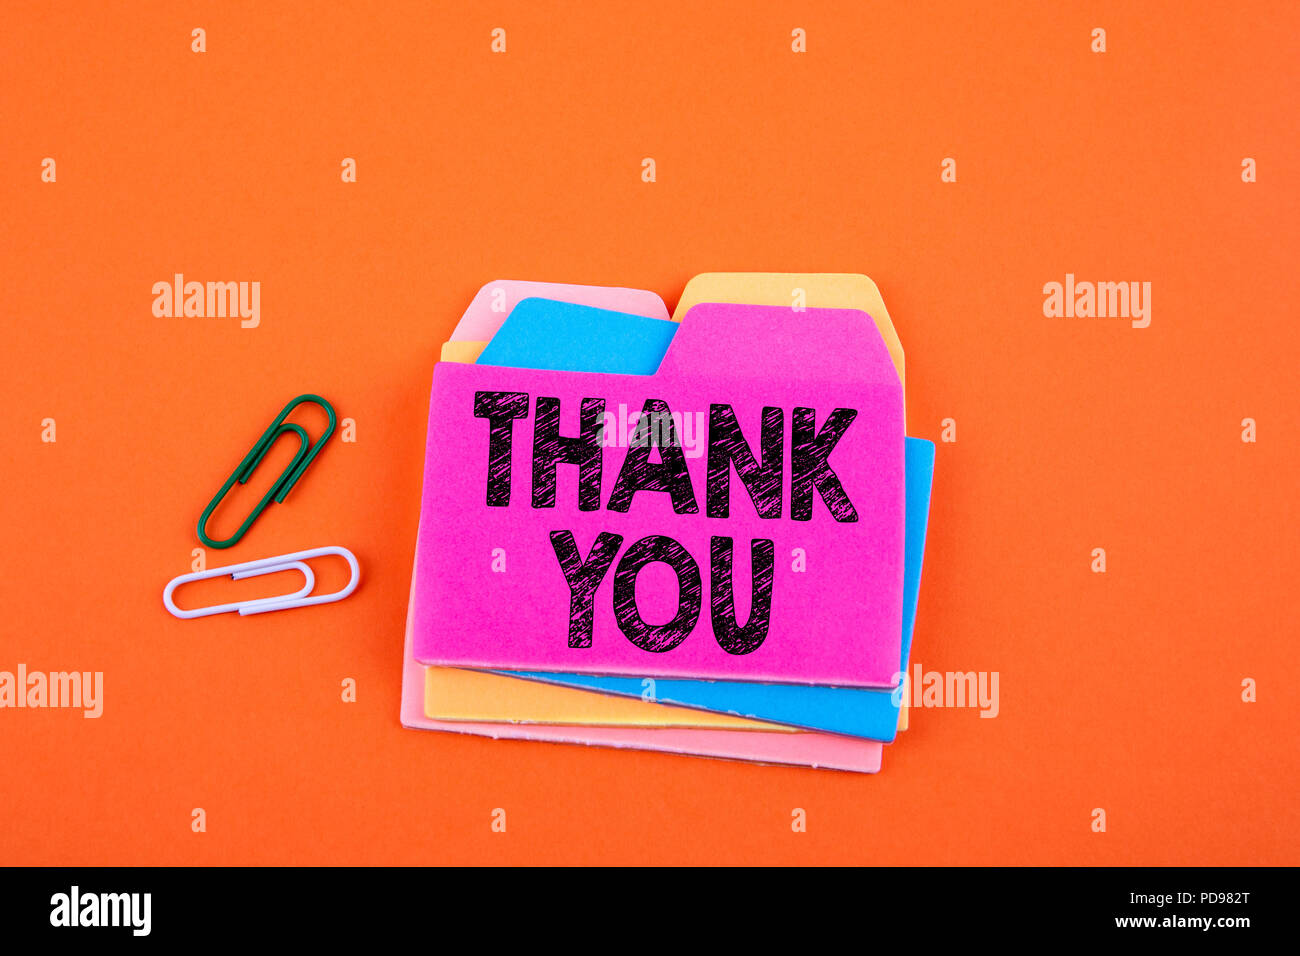 Thank You, Business Concept - Stock Image